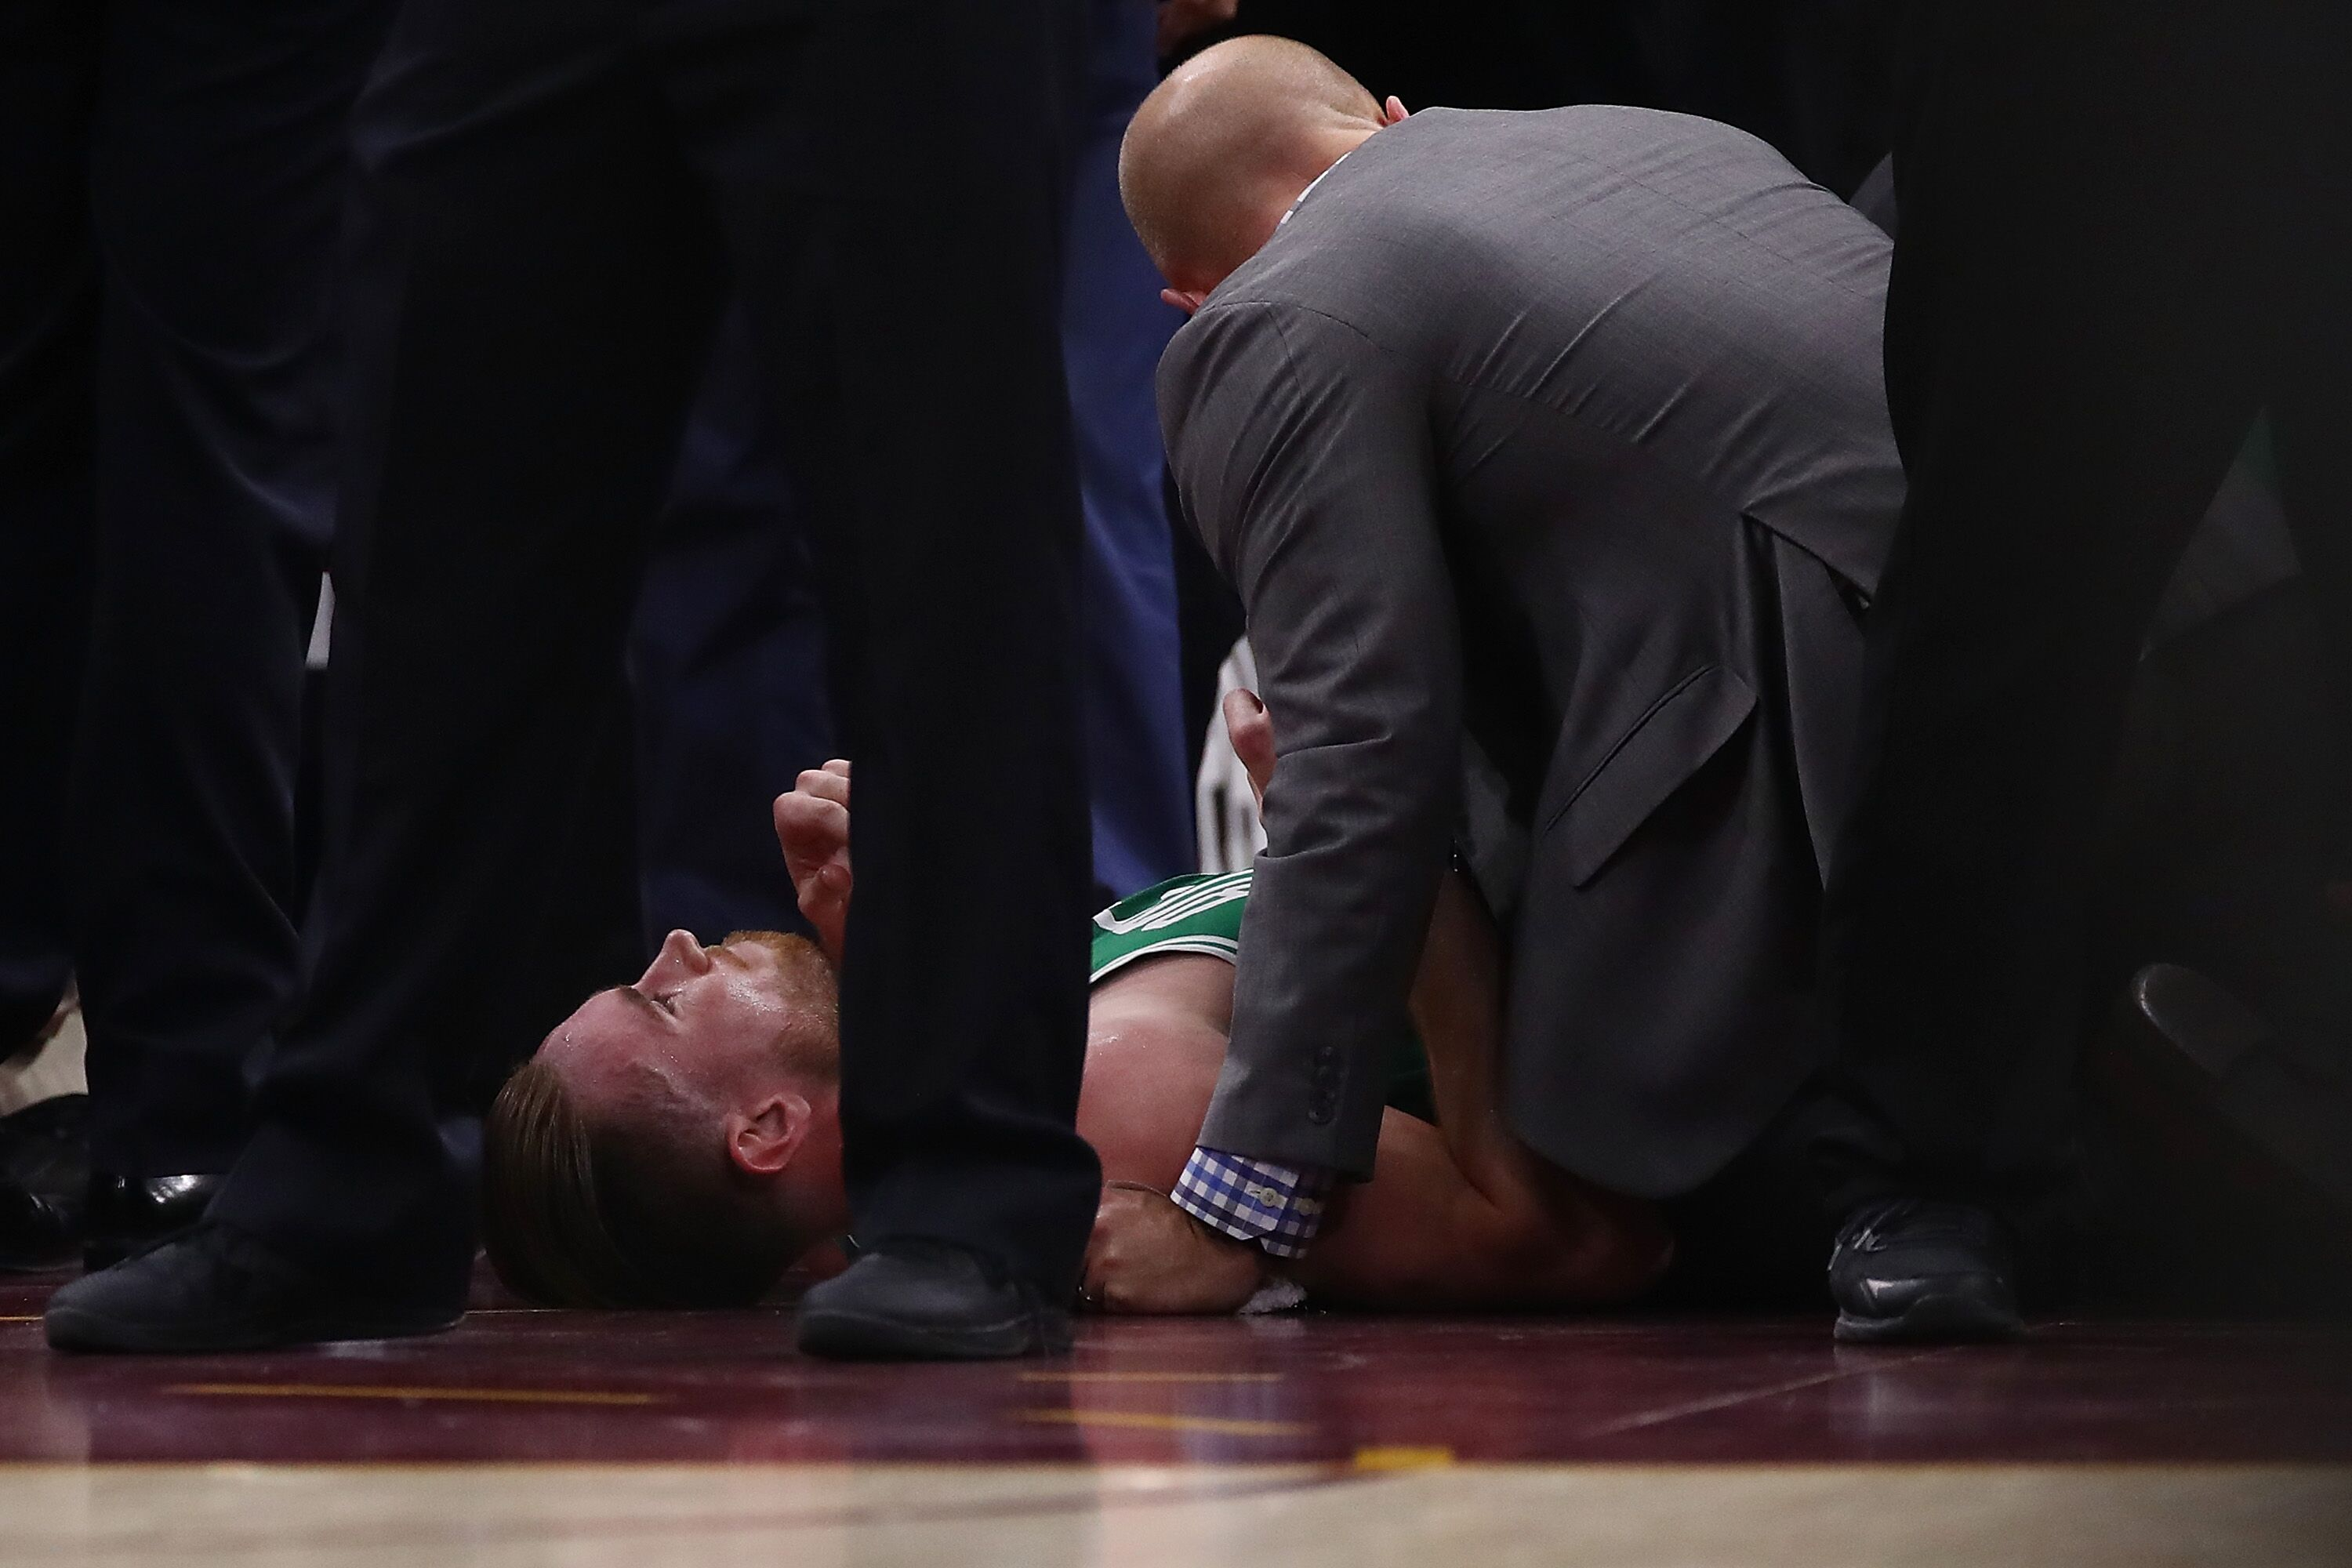 862558566-boston-celtics-vs-cleveland-cavaliers.jpg